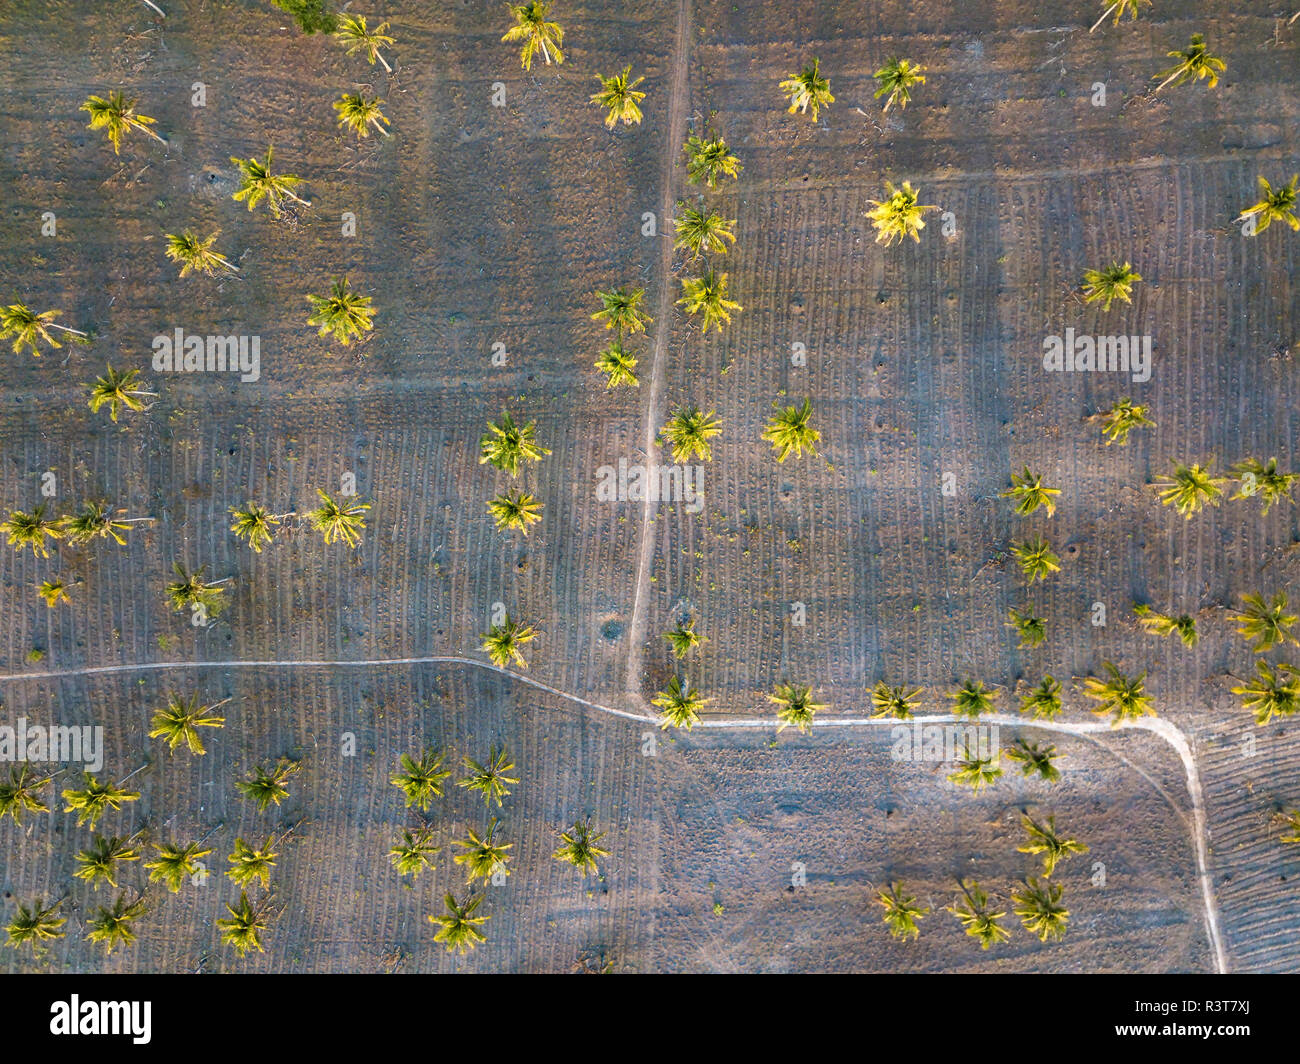 Indonesia, Lombok, Aerial view of palms and ways - Stock Image